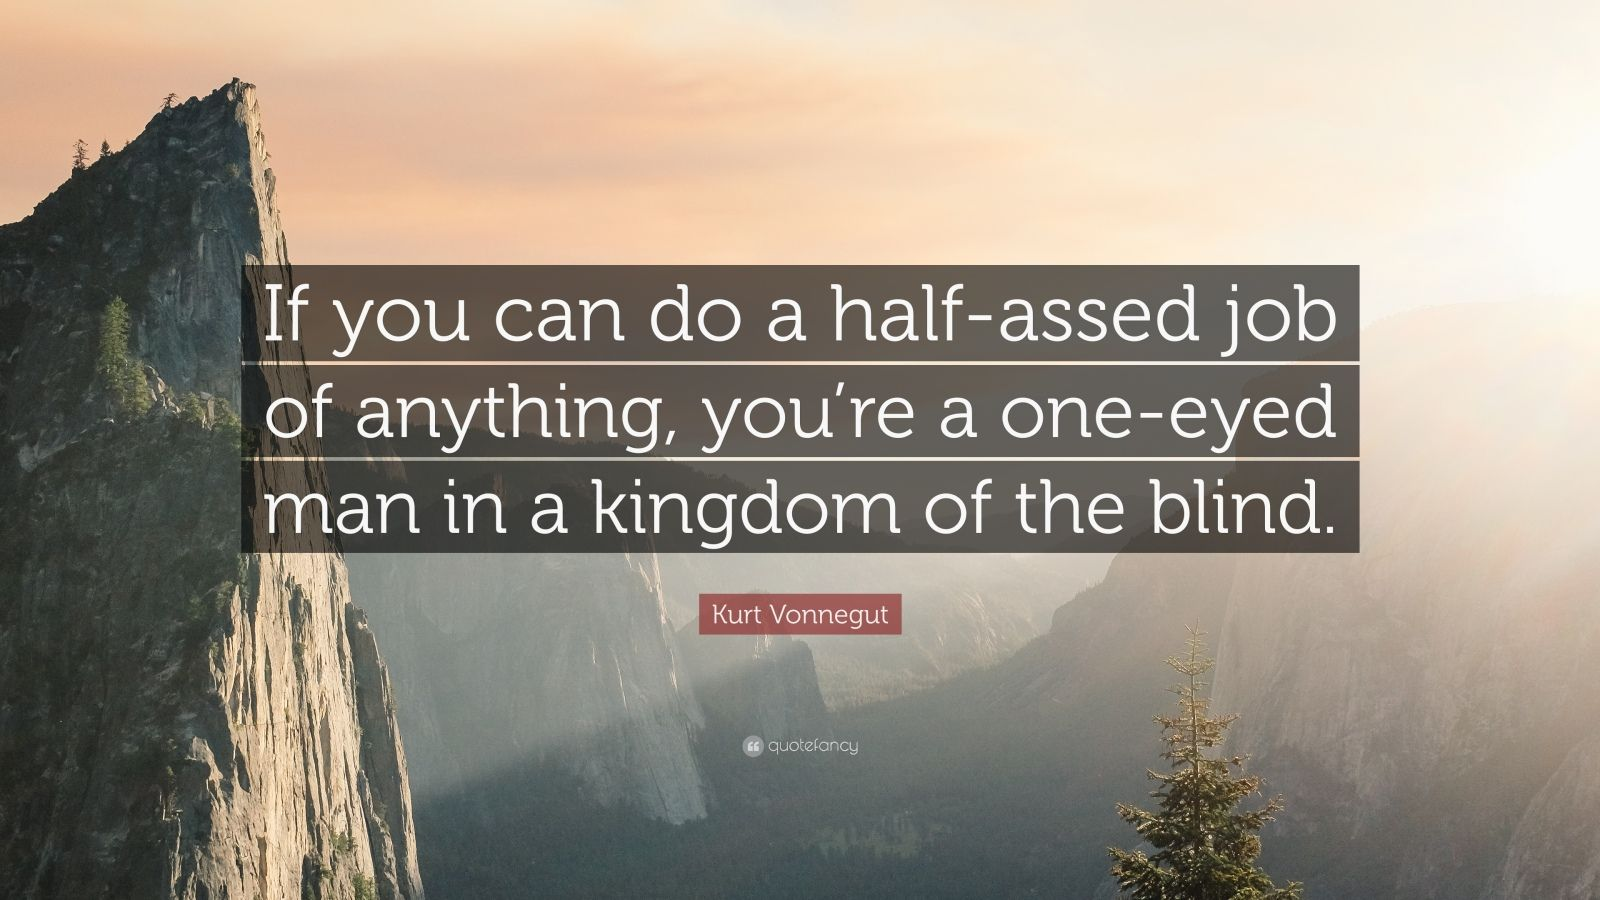 """Kurt Vonnegut Quote: """"If you can do a half-assed job of anything, you're a one-eyed man in a kingdom of the blind."""""""